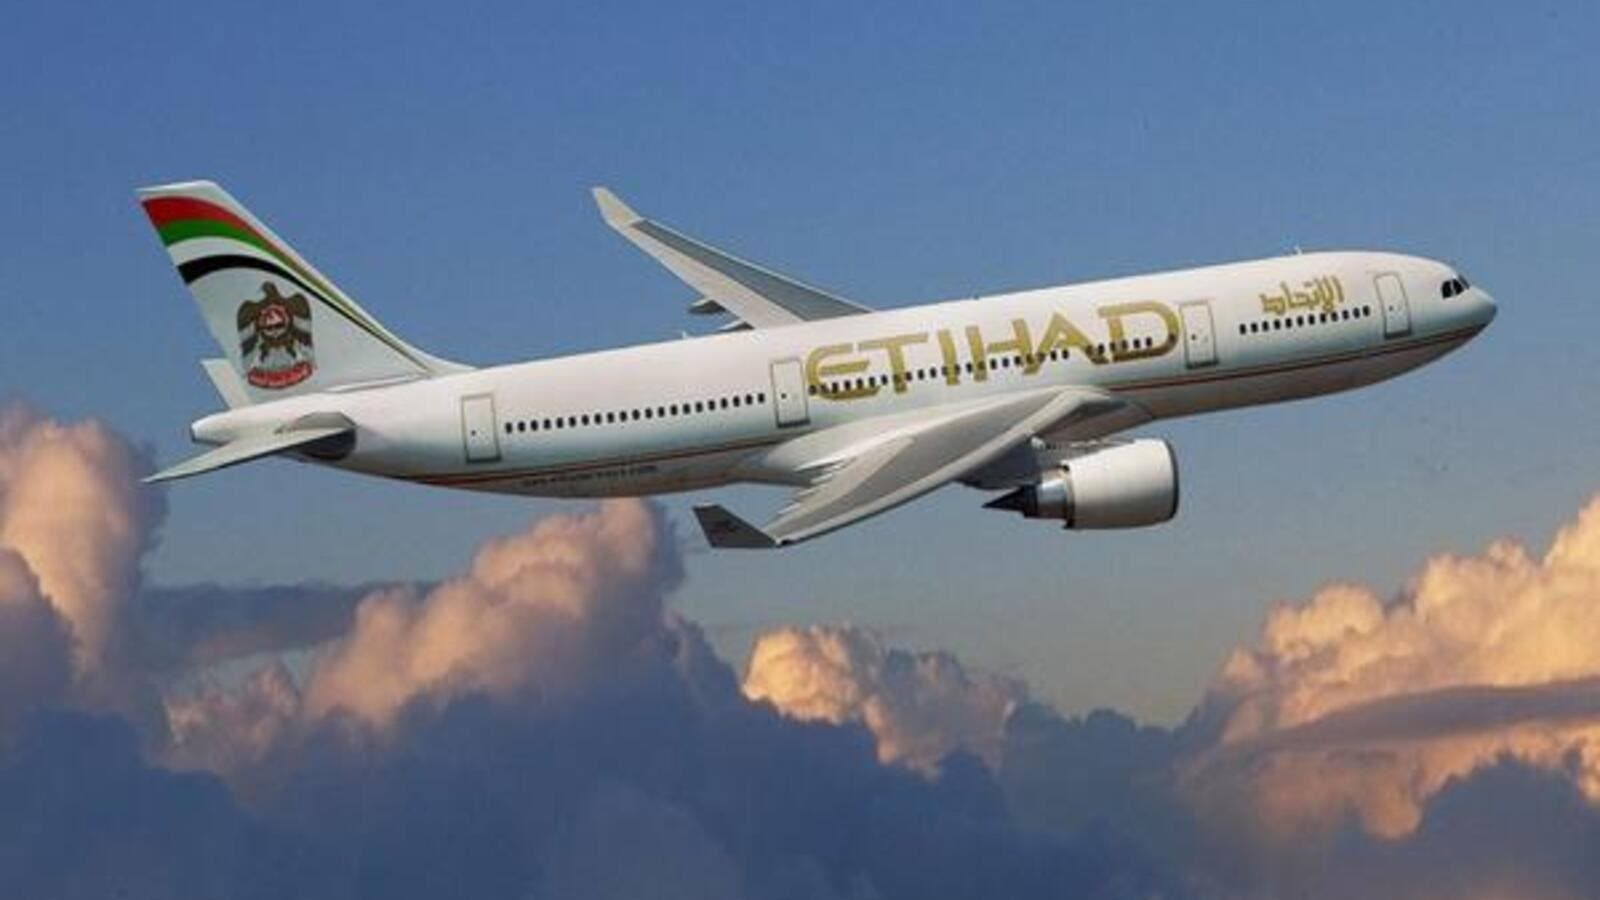 Etihad has embarked on a strategy of buying up stakes in airlines from Australia to Italy in bid to grow its network. (File photo)